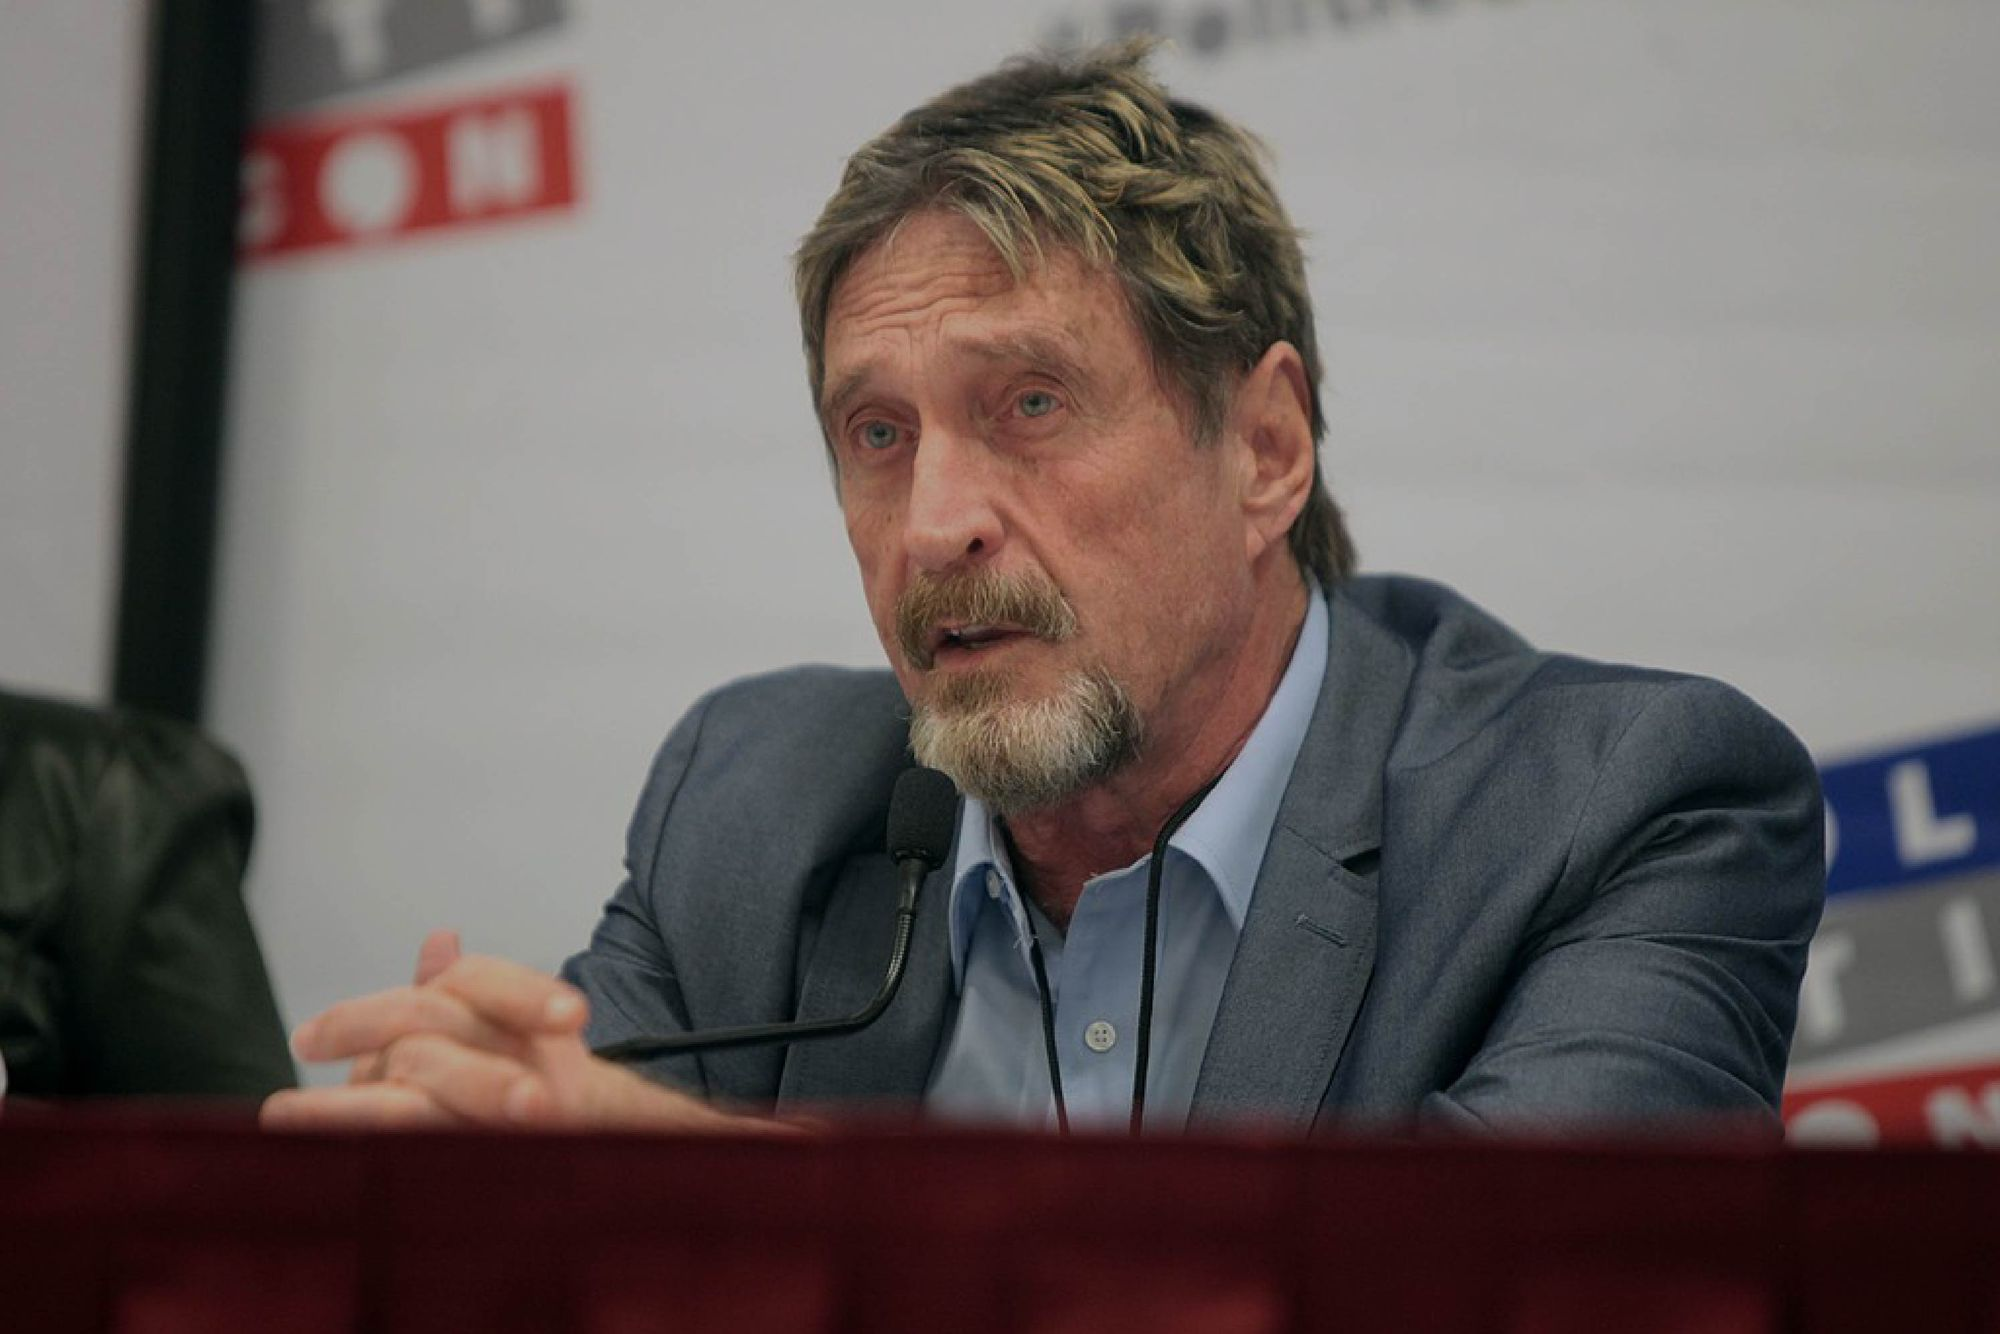 John McAfee committed suicide, the cruel fate of a famous crypto celebrity